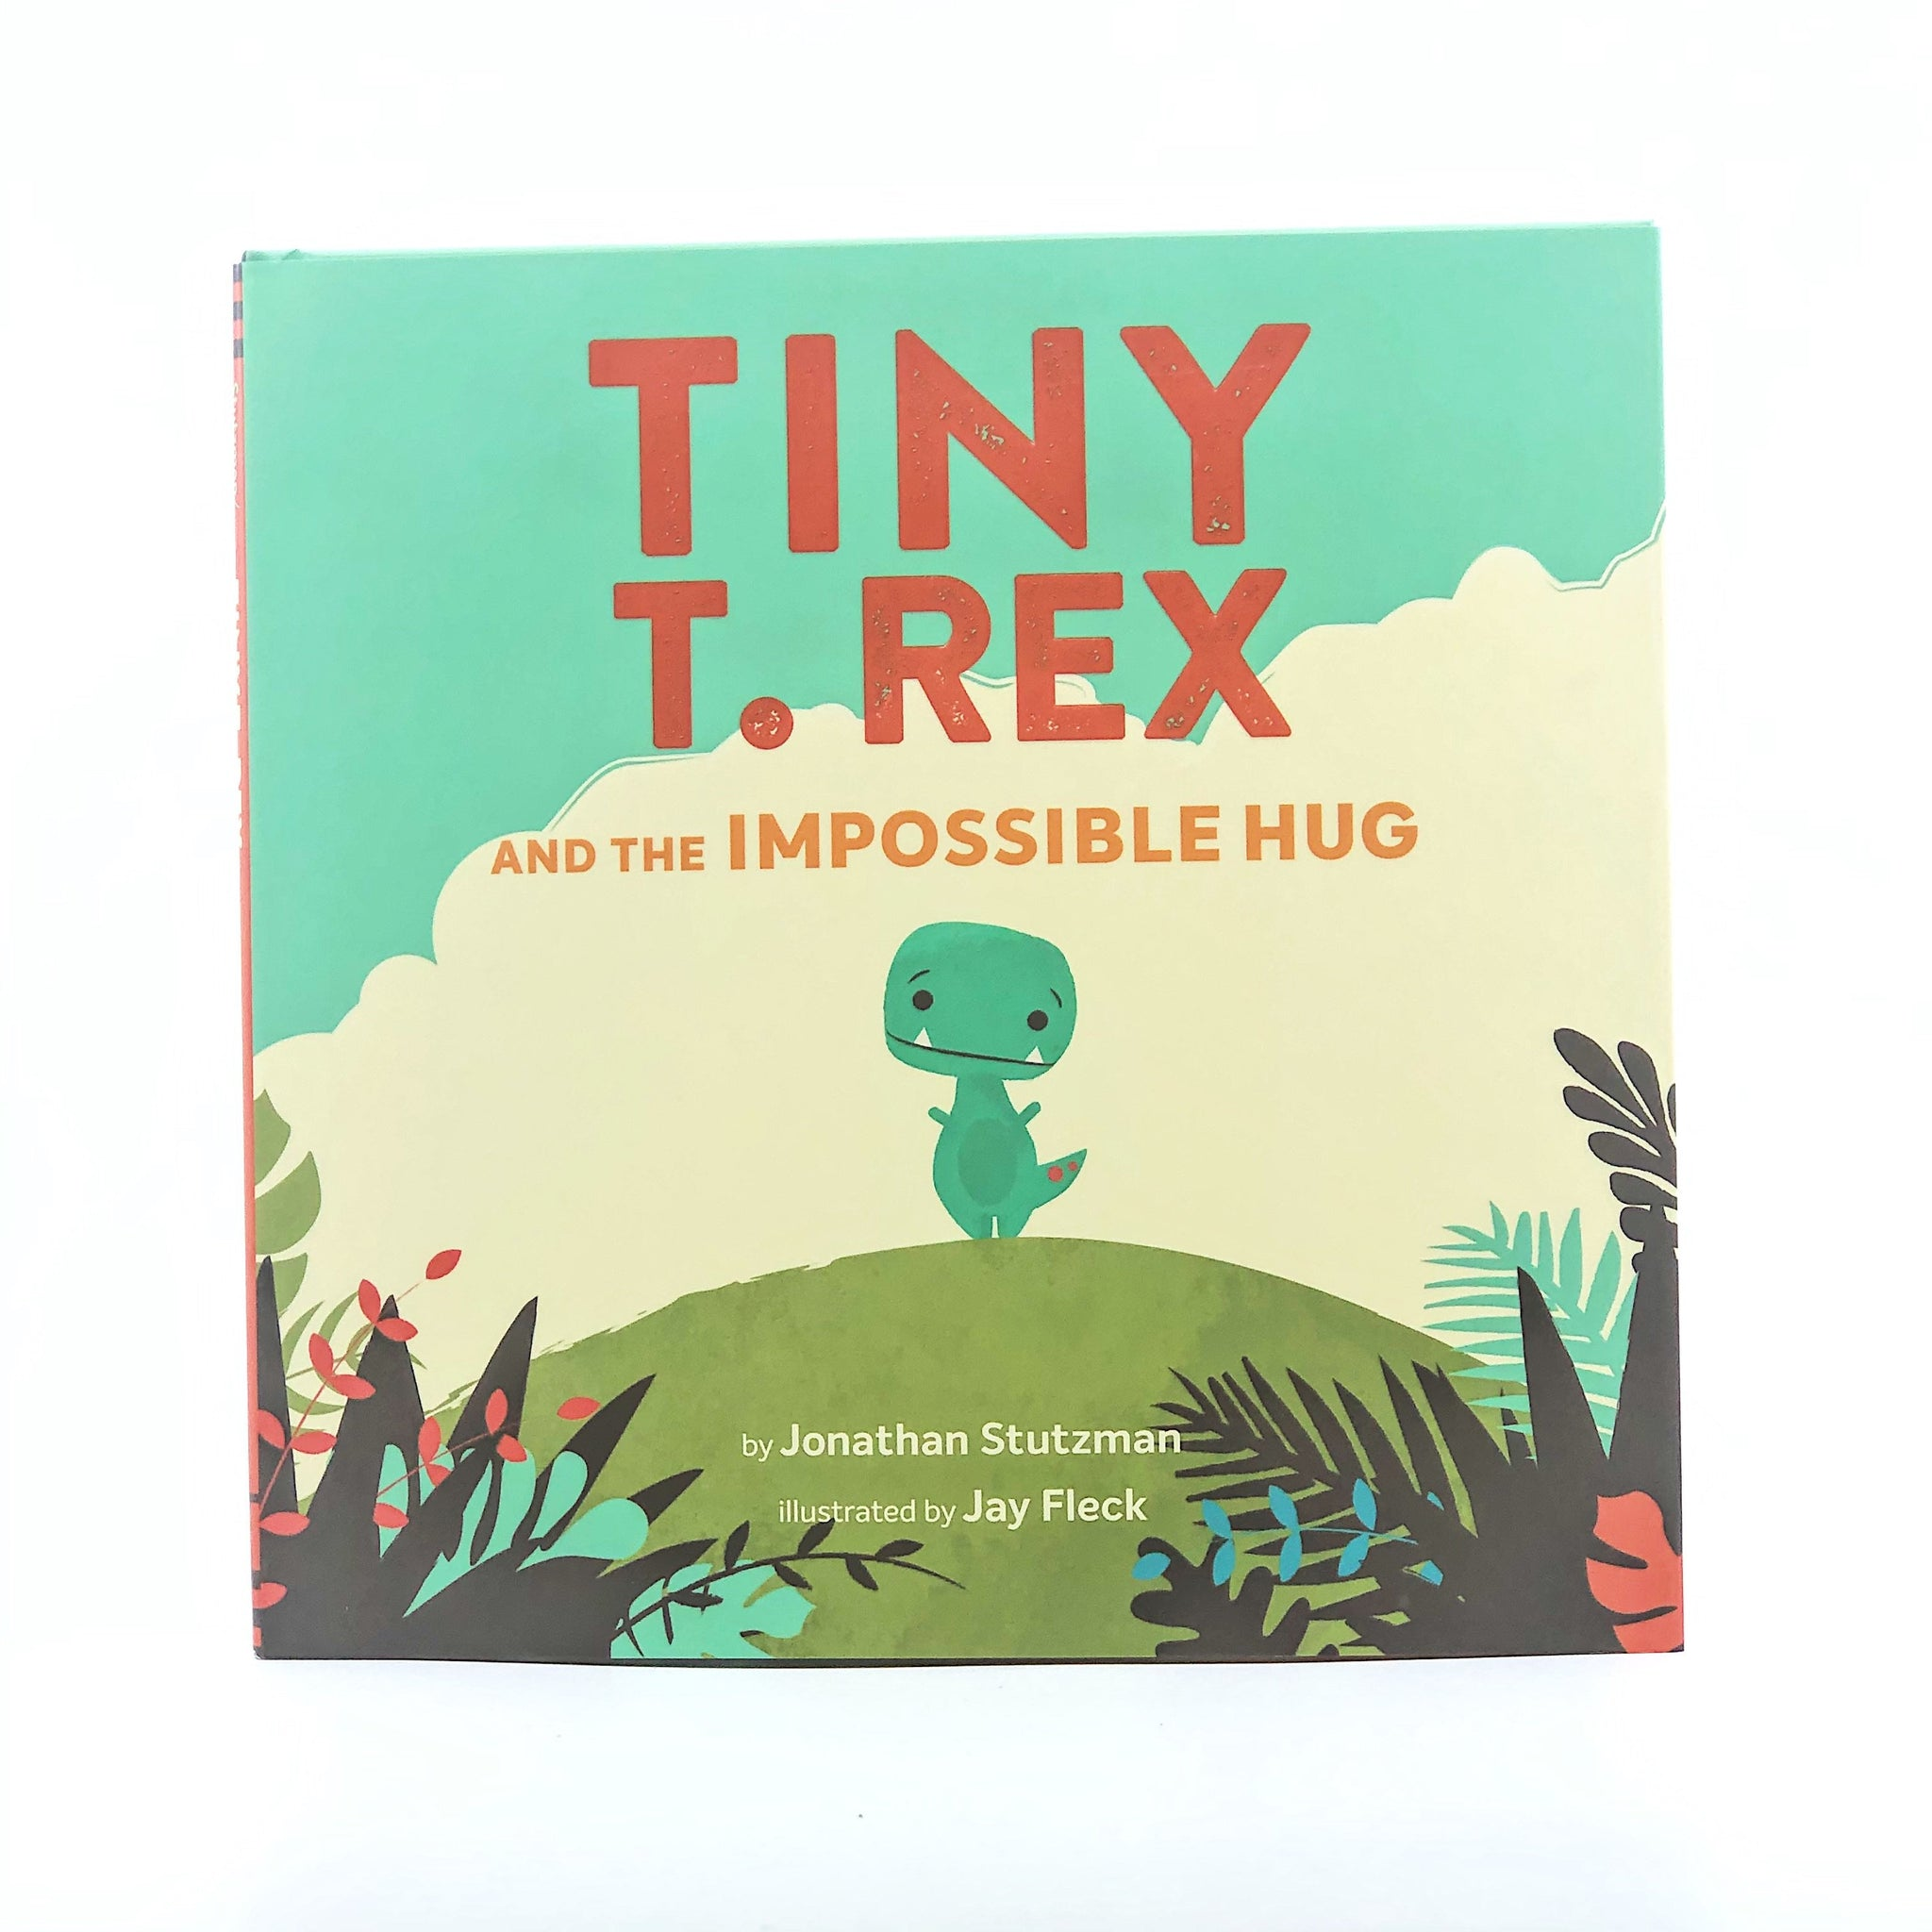 TINY T REX AND THE IMPOSSIBLE HUG CHILDREN'S BOOK